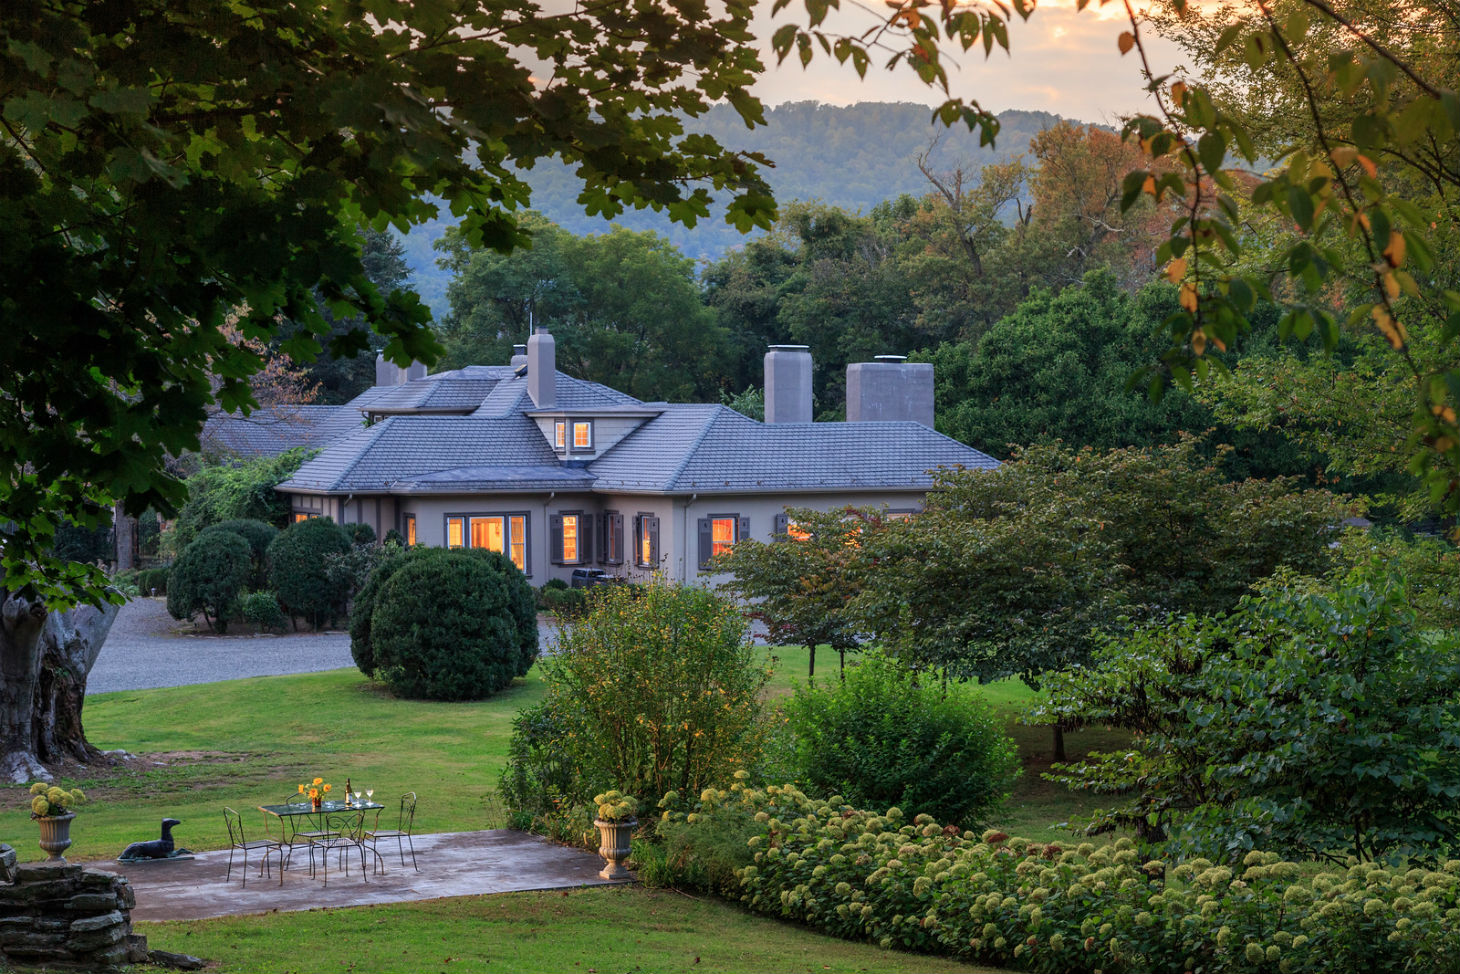 Glen Gordon Manor Exterior at Sunset